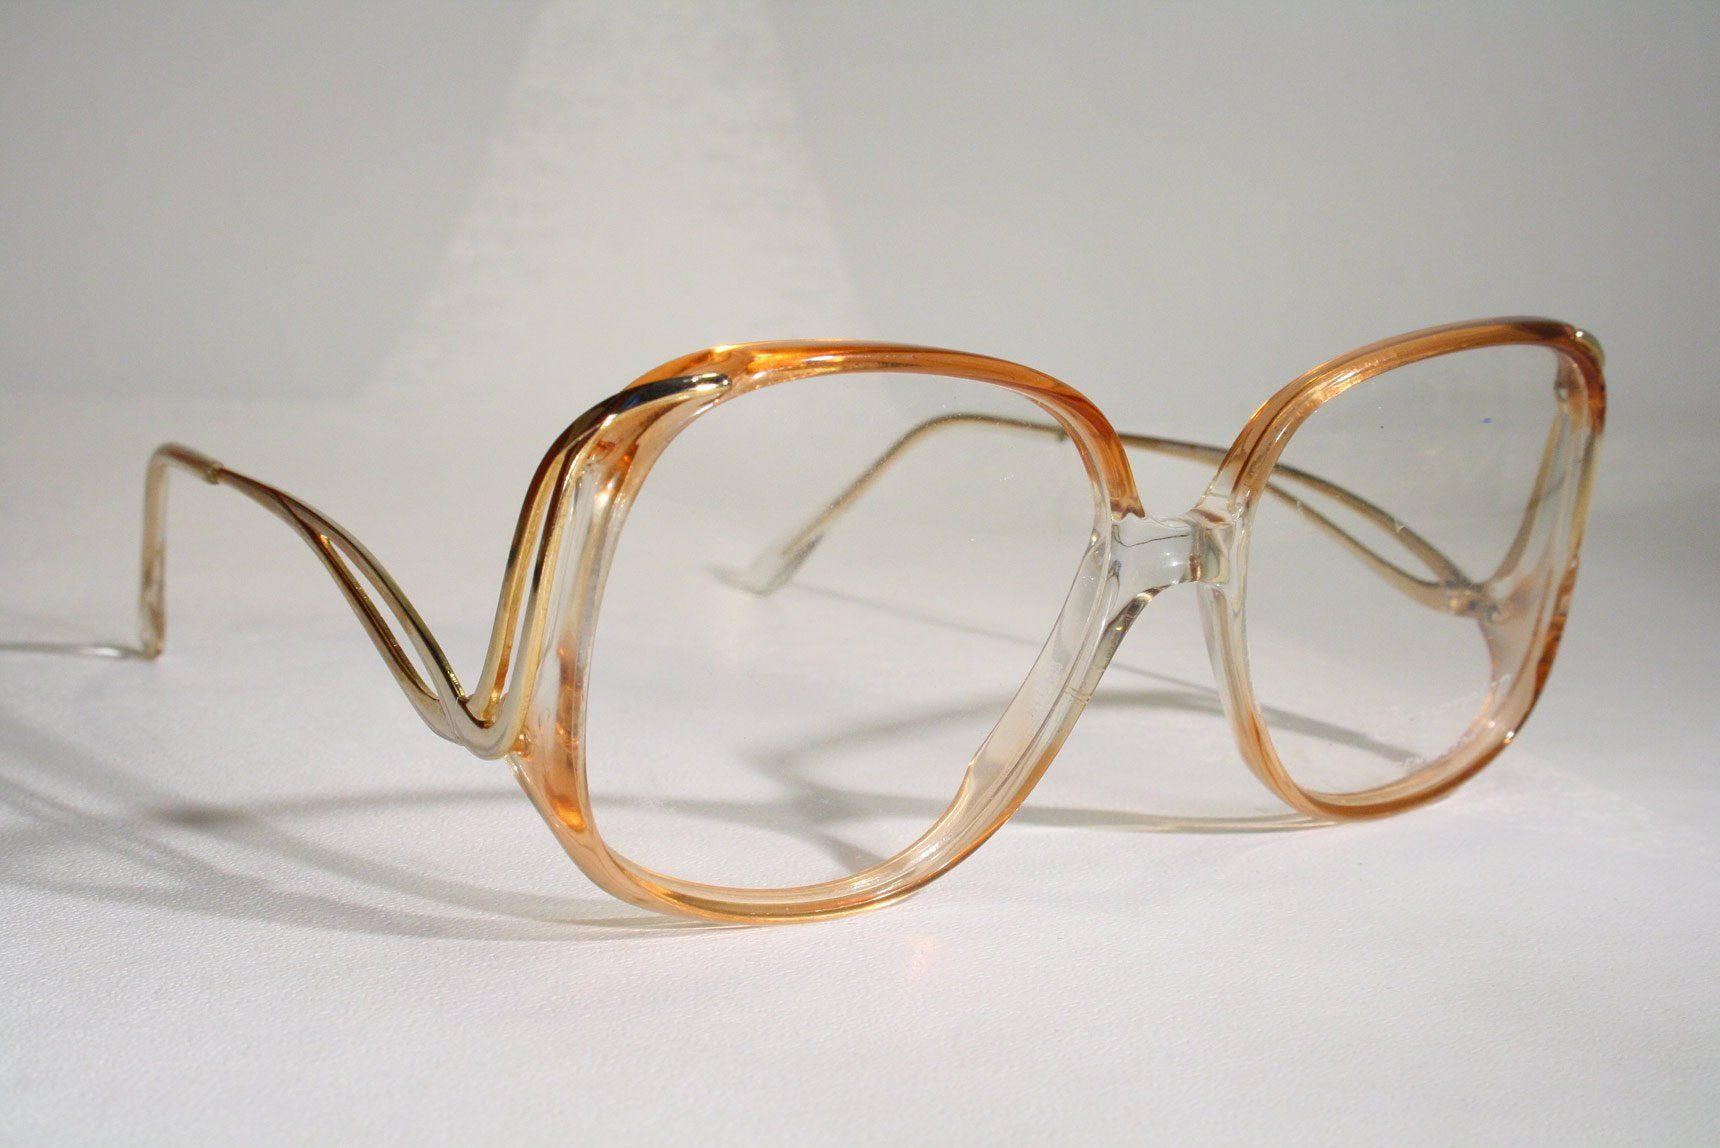 a841aafca389 SOVEREIGN  CHANTELLE  Eighties 1980 s Colorful Drop Arm Eyeglass Frames  Eyeglasses   Etsy (RipVanW)